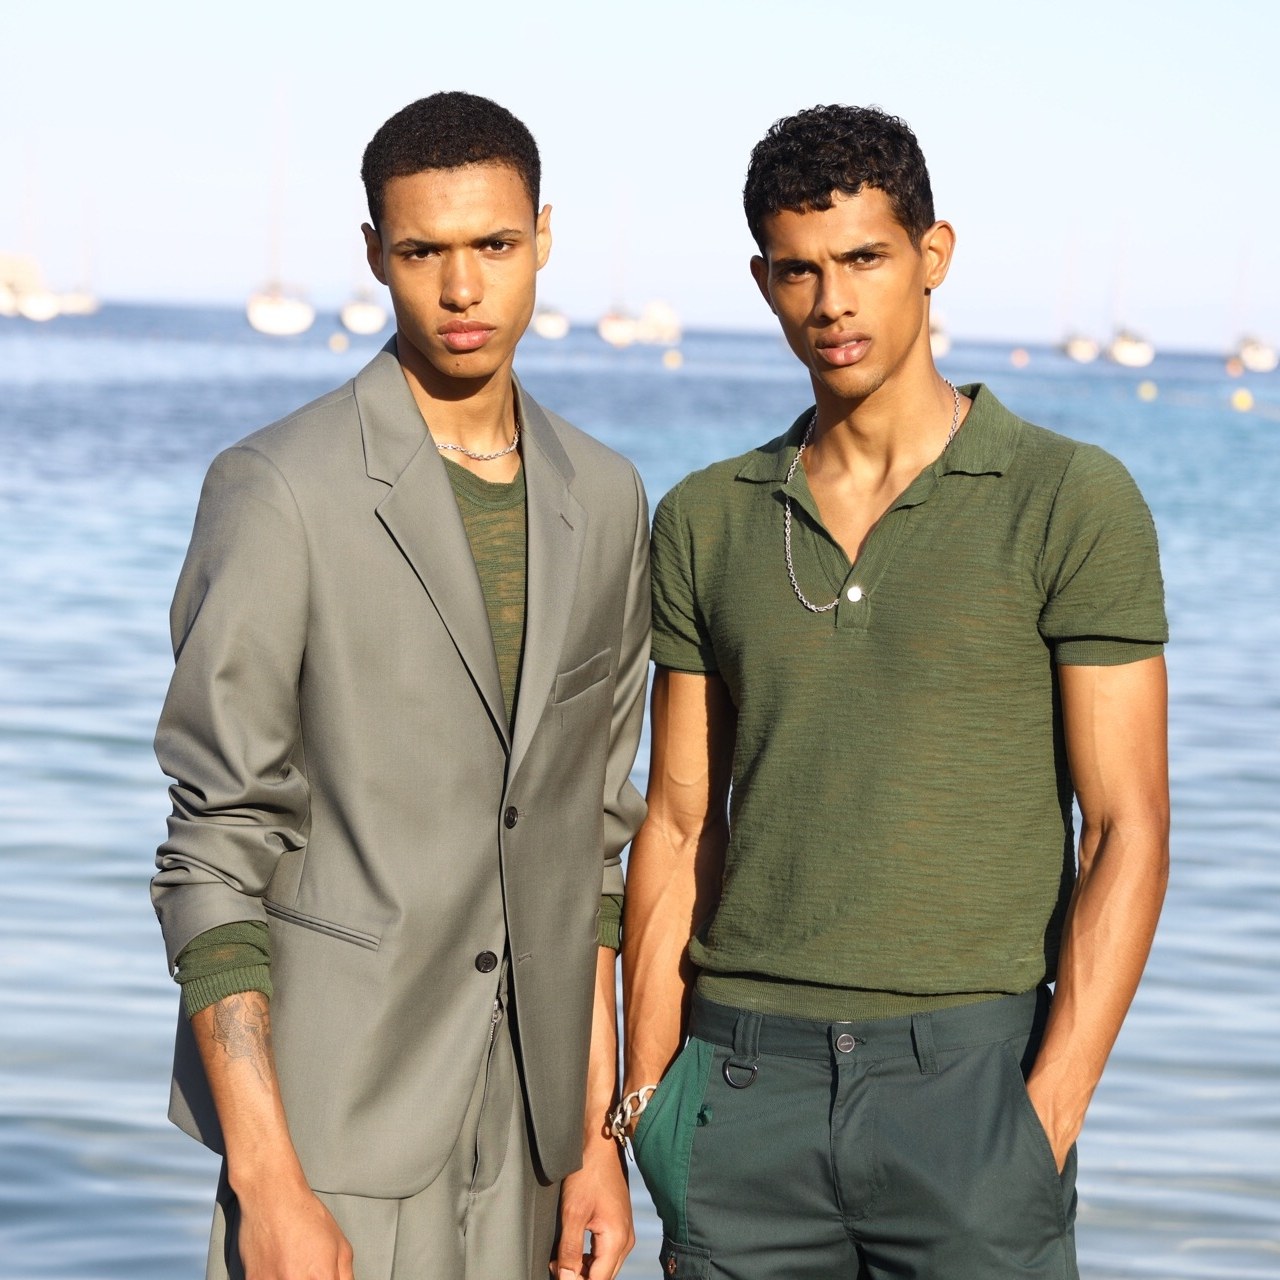 Jacquemus  Label created by French designer Simon Porte Jacquemus that presented their first ever menswear collection in Spring 2019.   https://www.jacquemus.com